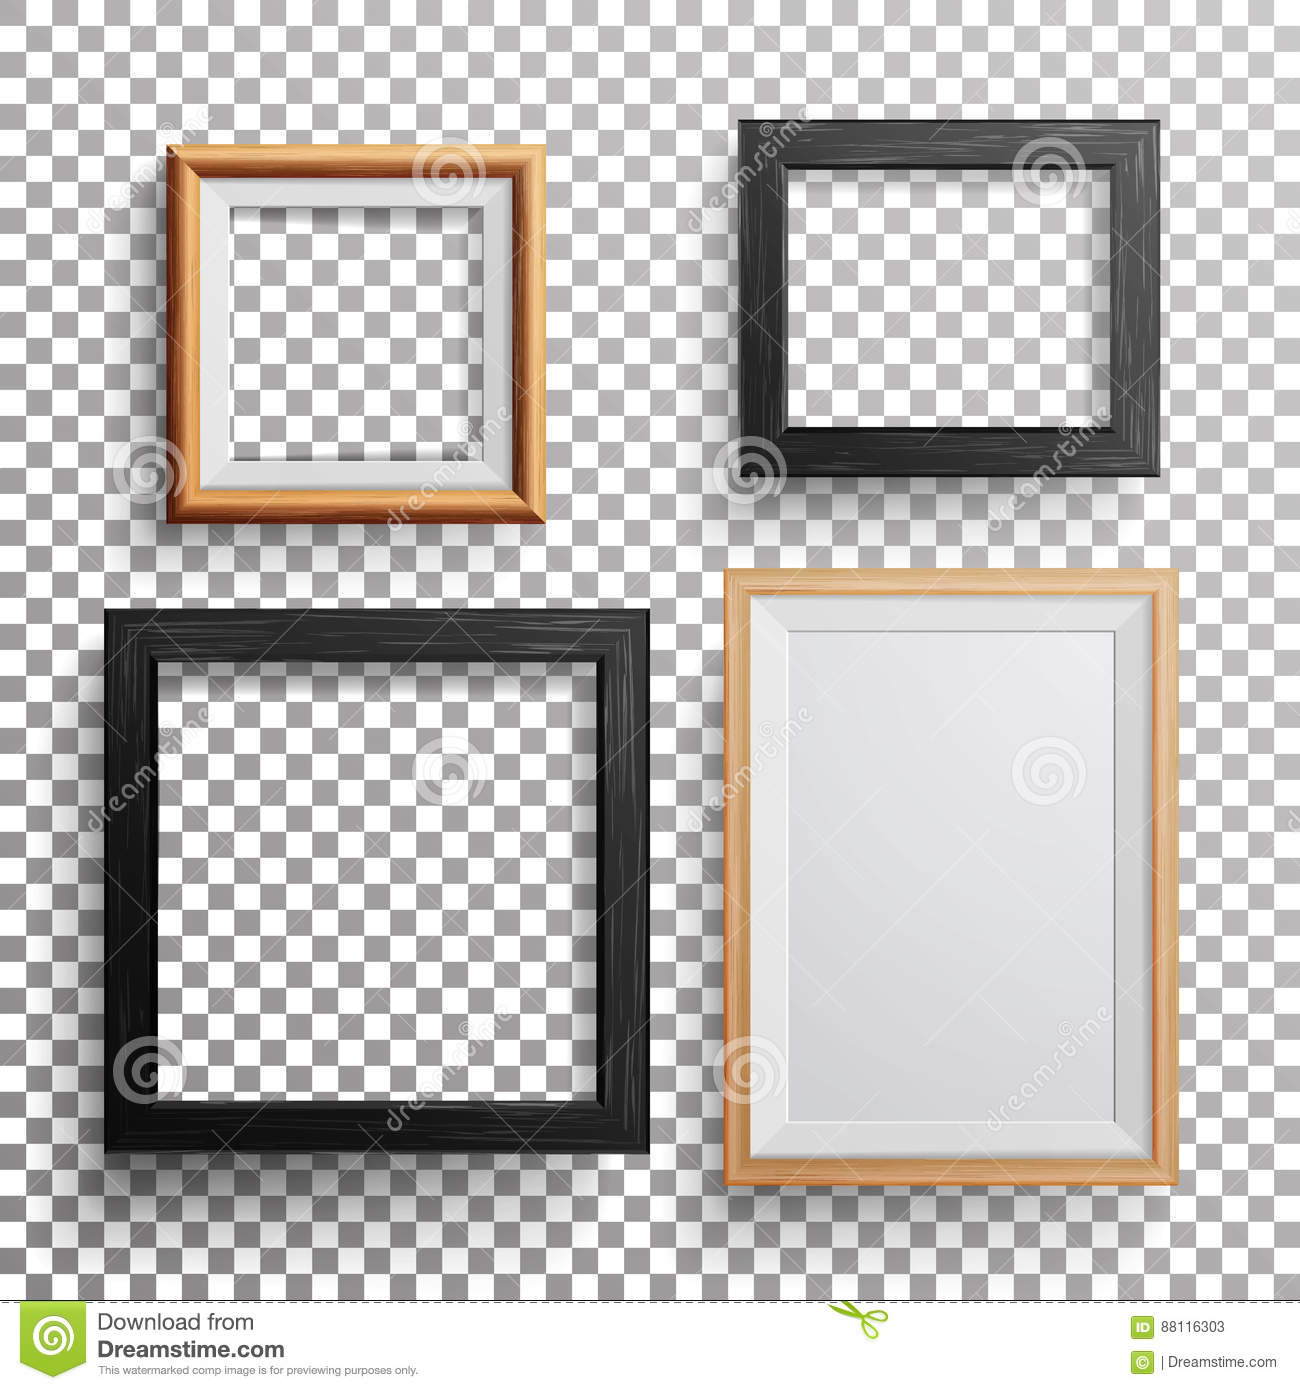 Realistic Photo Frame Vector. 3d Set Square, A3, A4 Sizes Light Wood ...